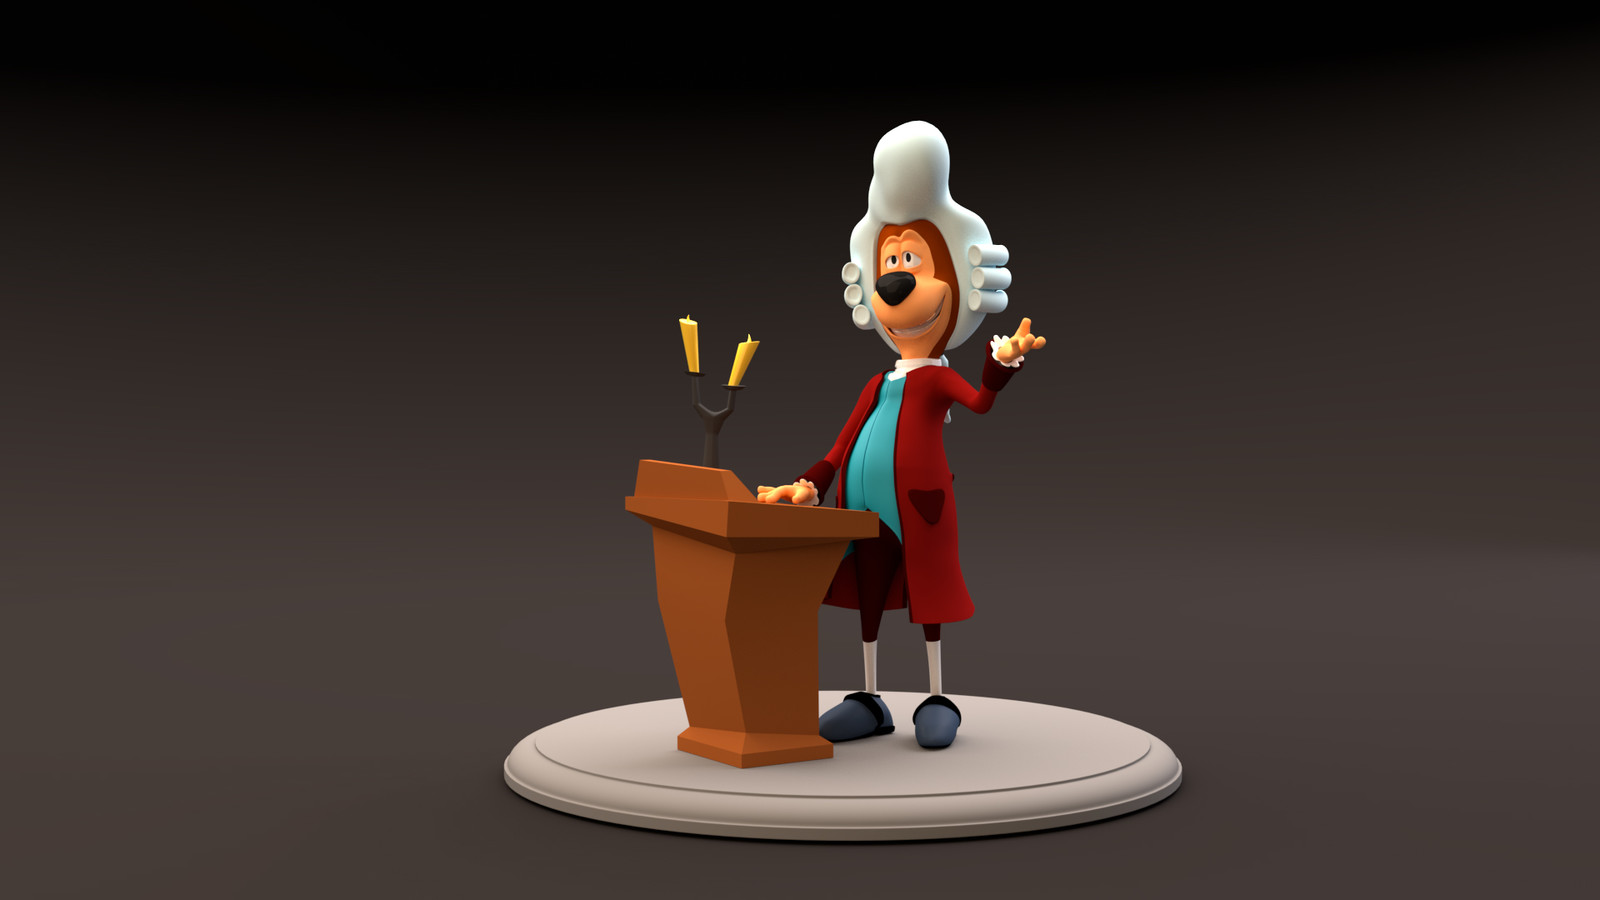 George the Butler, 3D model and design